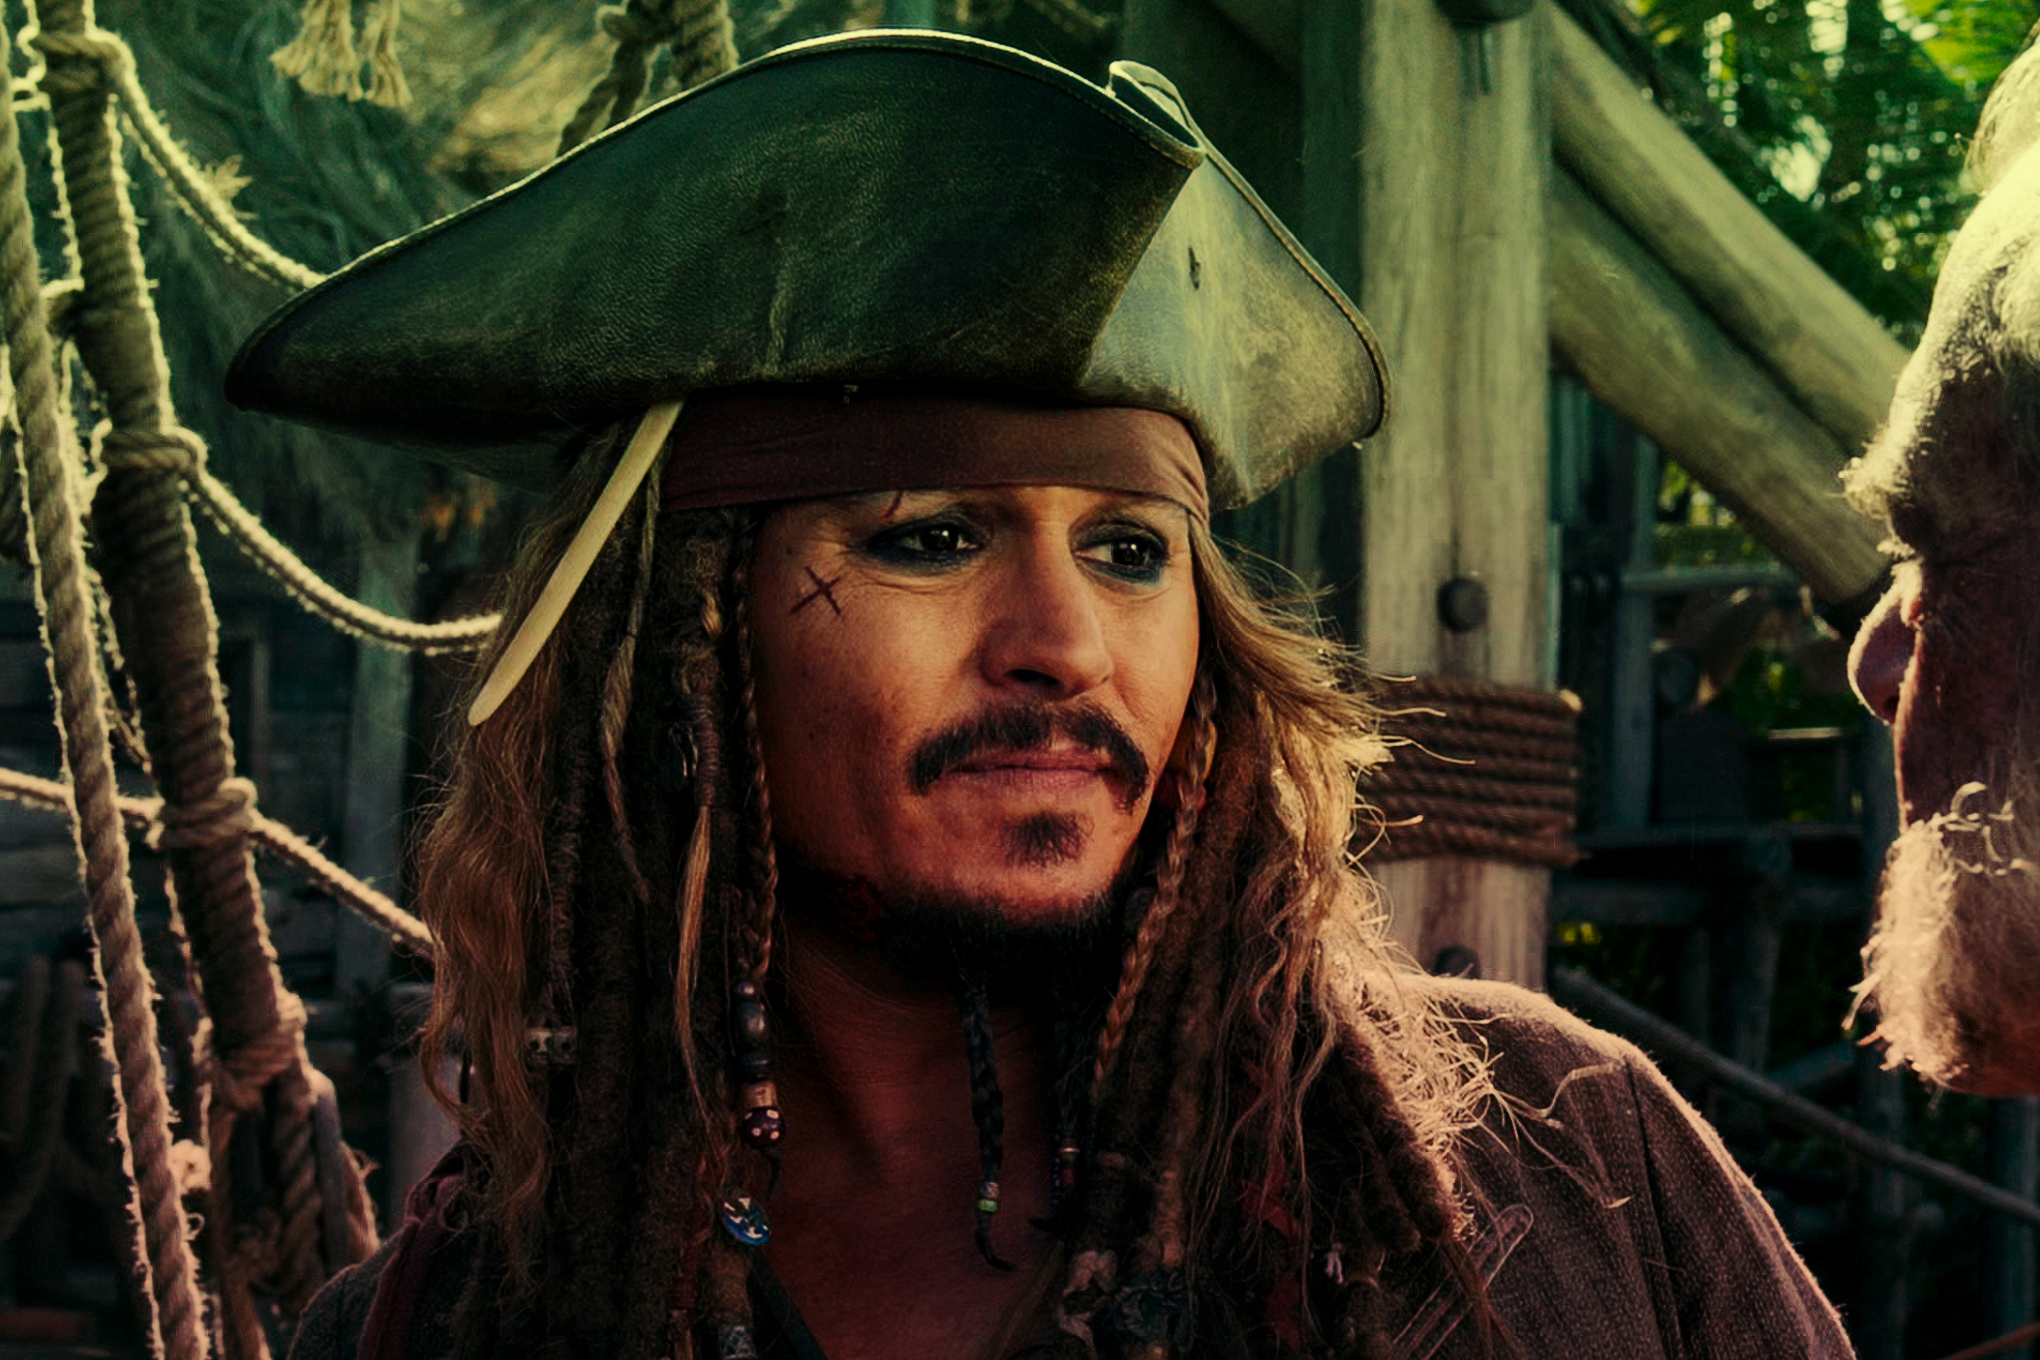 Photo of Johnny Depp from the film Pirates of the Caribbean.